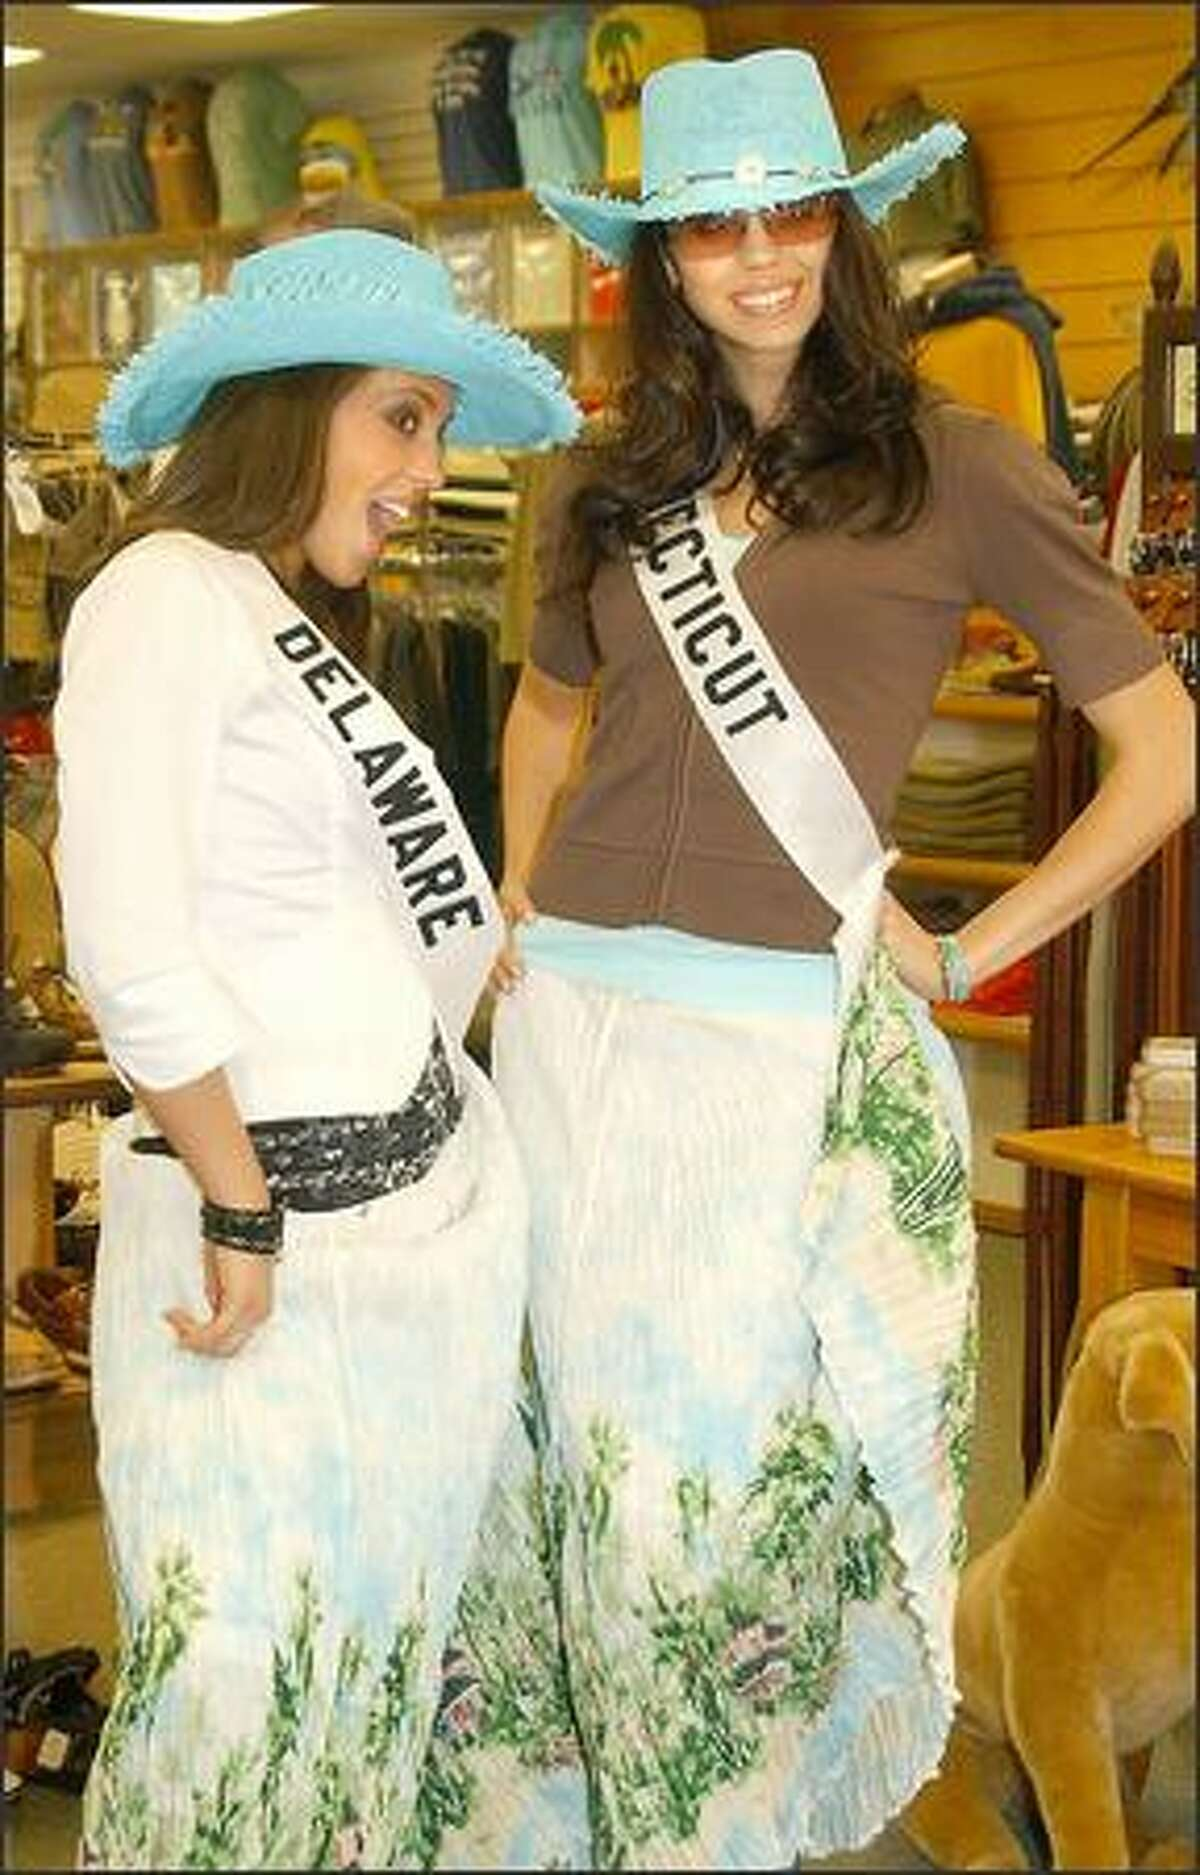 Miss USA contestants Miss Delaware Ashlee Greenwell, left, and Miss Connecticut Jeannine Phillips model some of Maryland's gaudier garb from Chesapeake Bay Outfitters as they tour the state in preparation for the competition, April 21 in Baltimore.